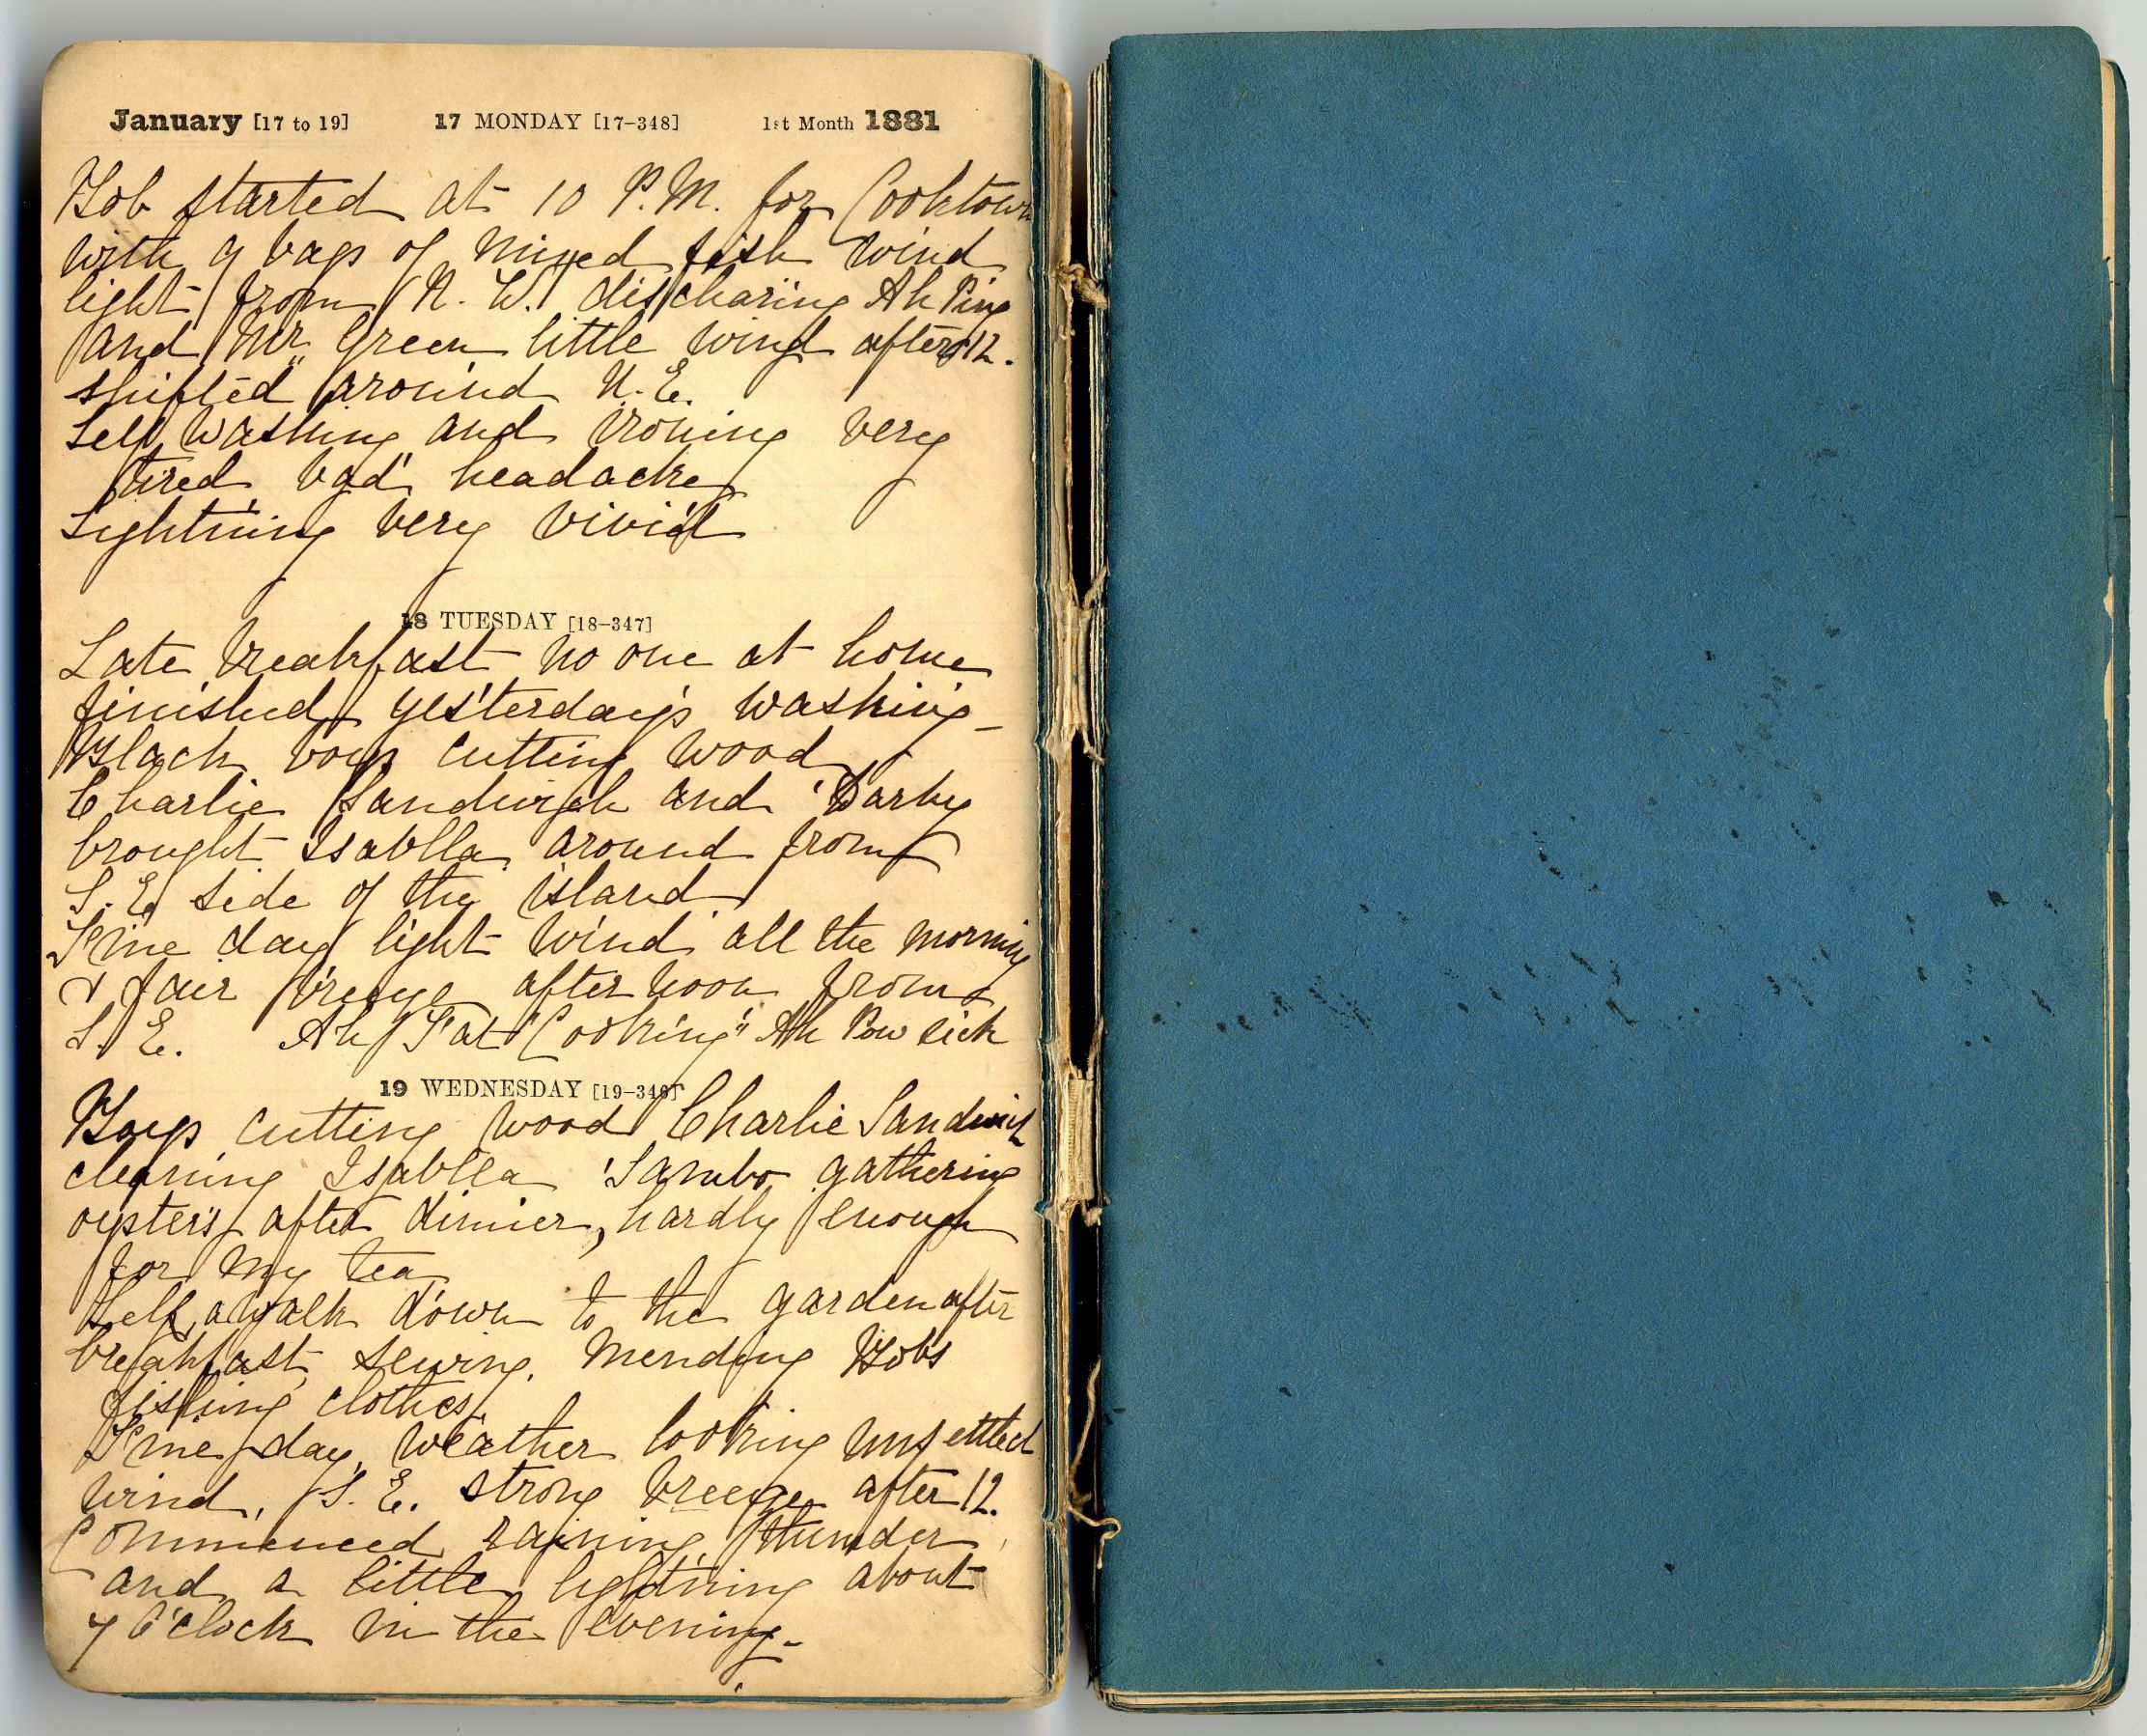 The 1881 diary kept by Mary Watson while she lived at Lizard Island and later fled the diary contains Marys final entries until  10 October 1881